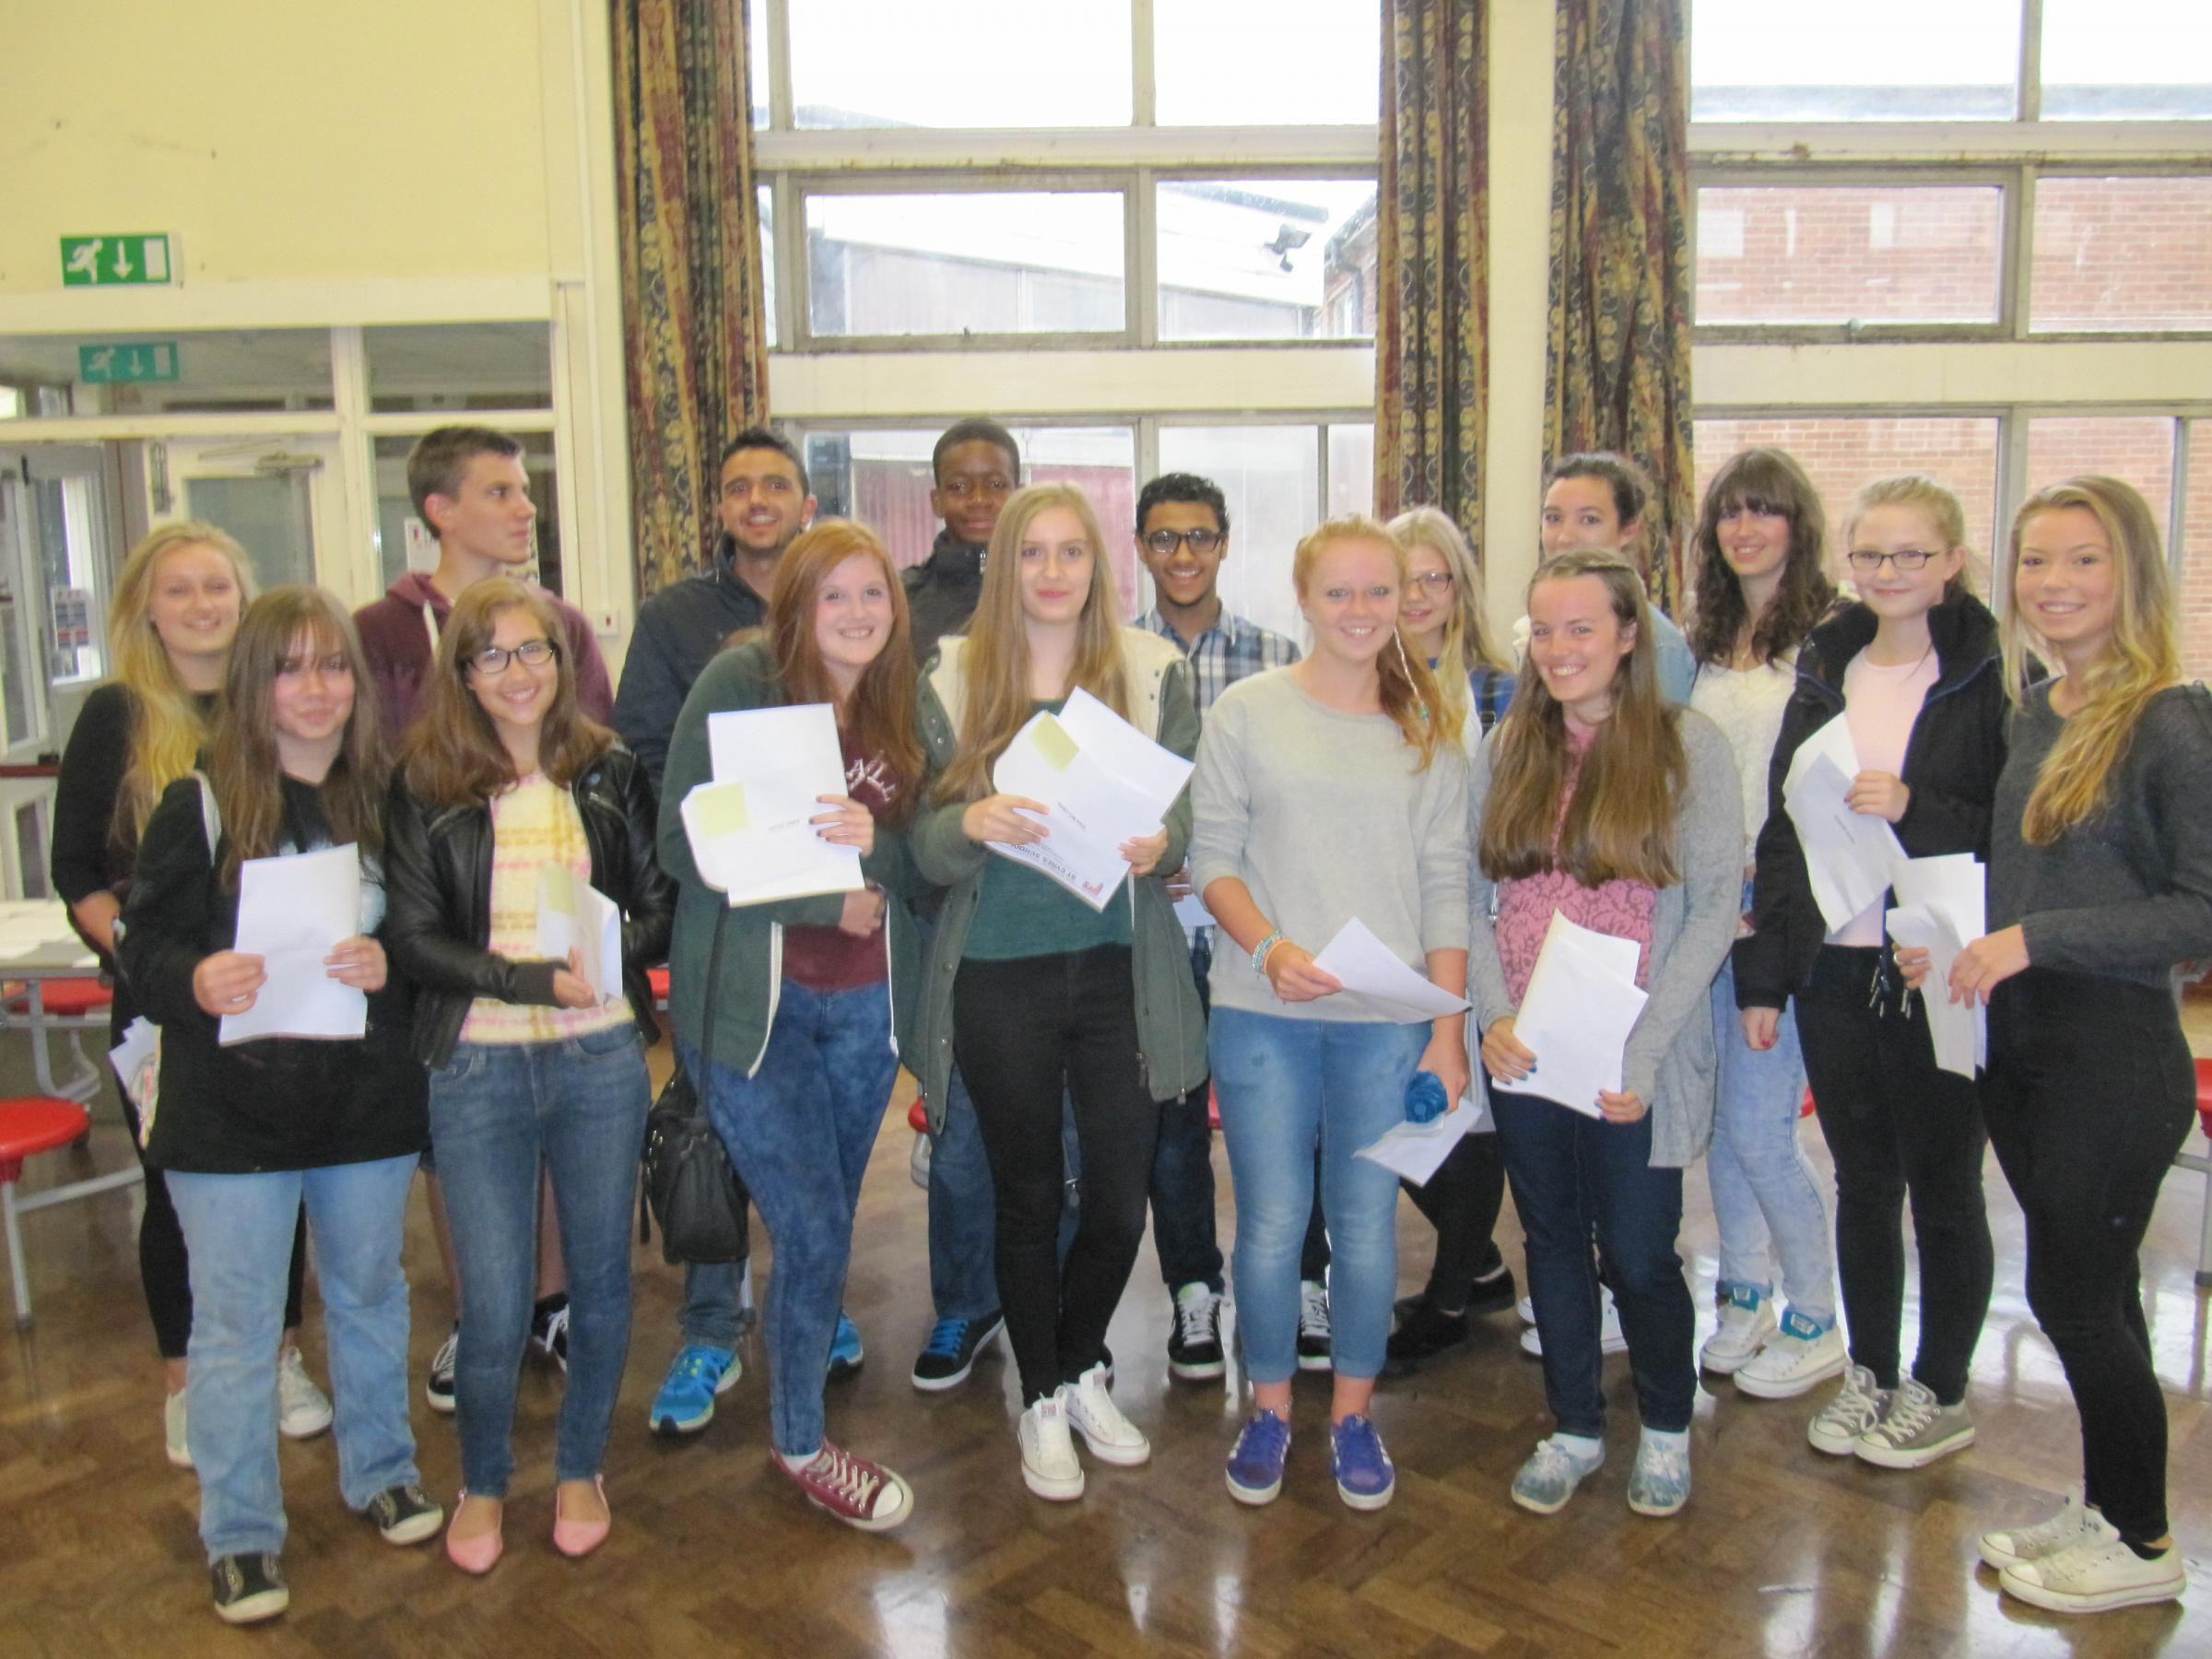 St Cyres School celebrates 'phenomenal' GCSE results in record breaking year